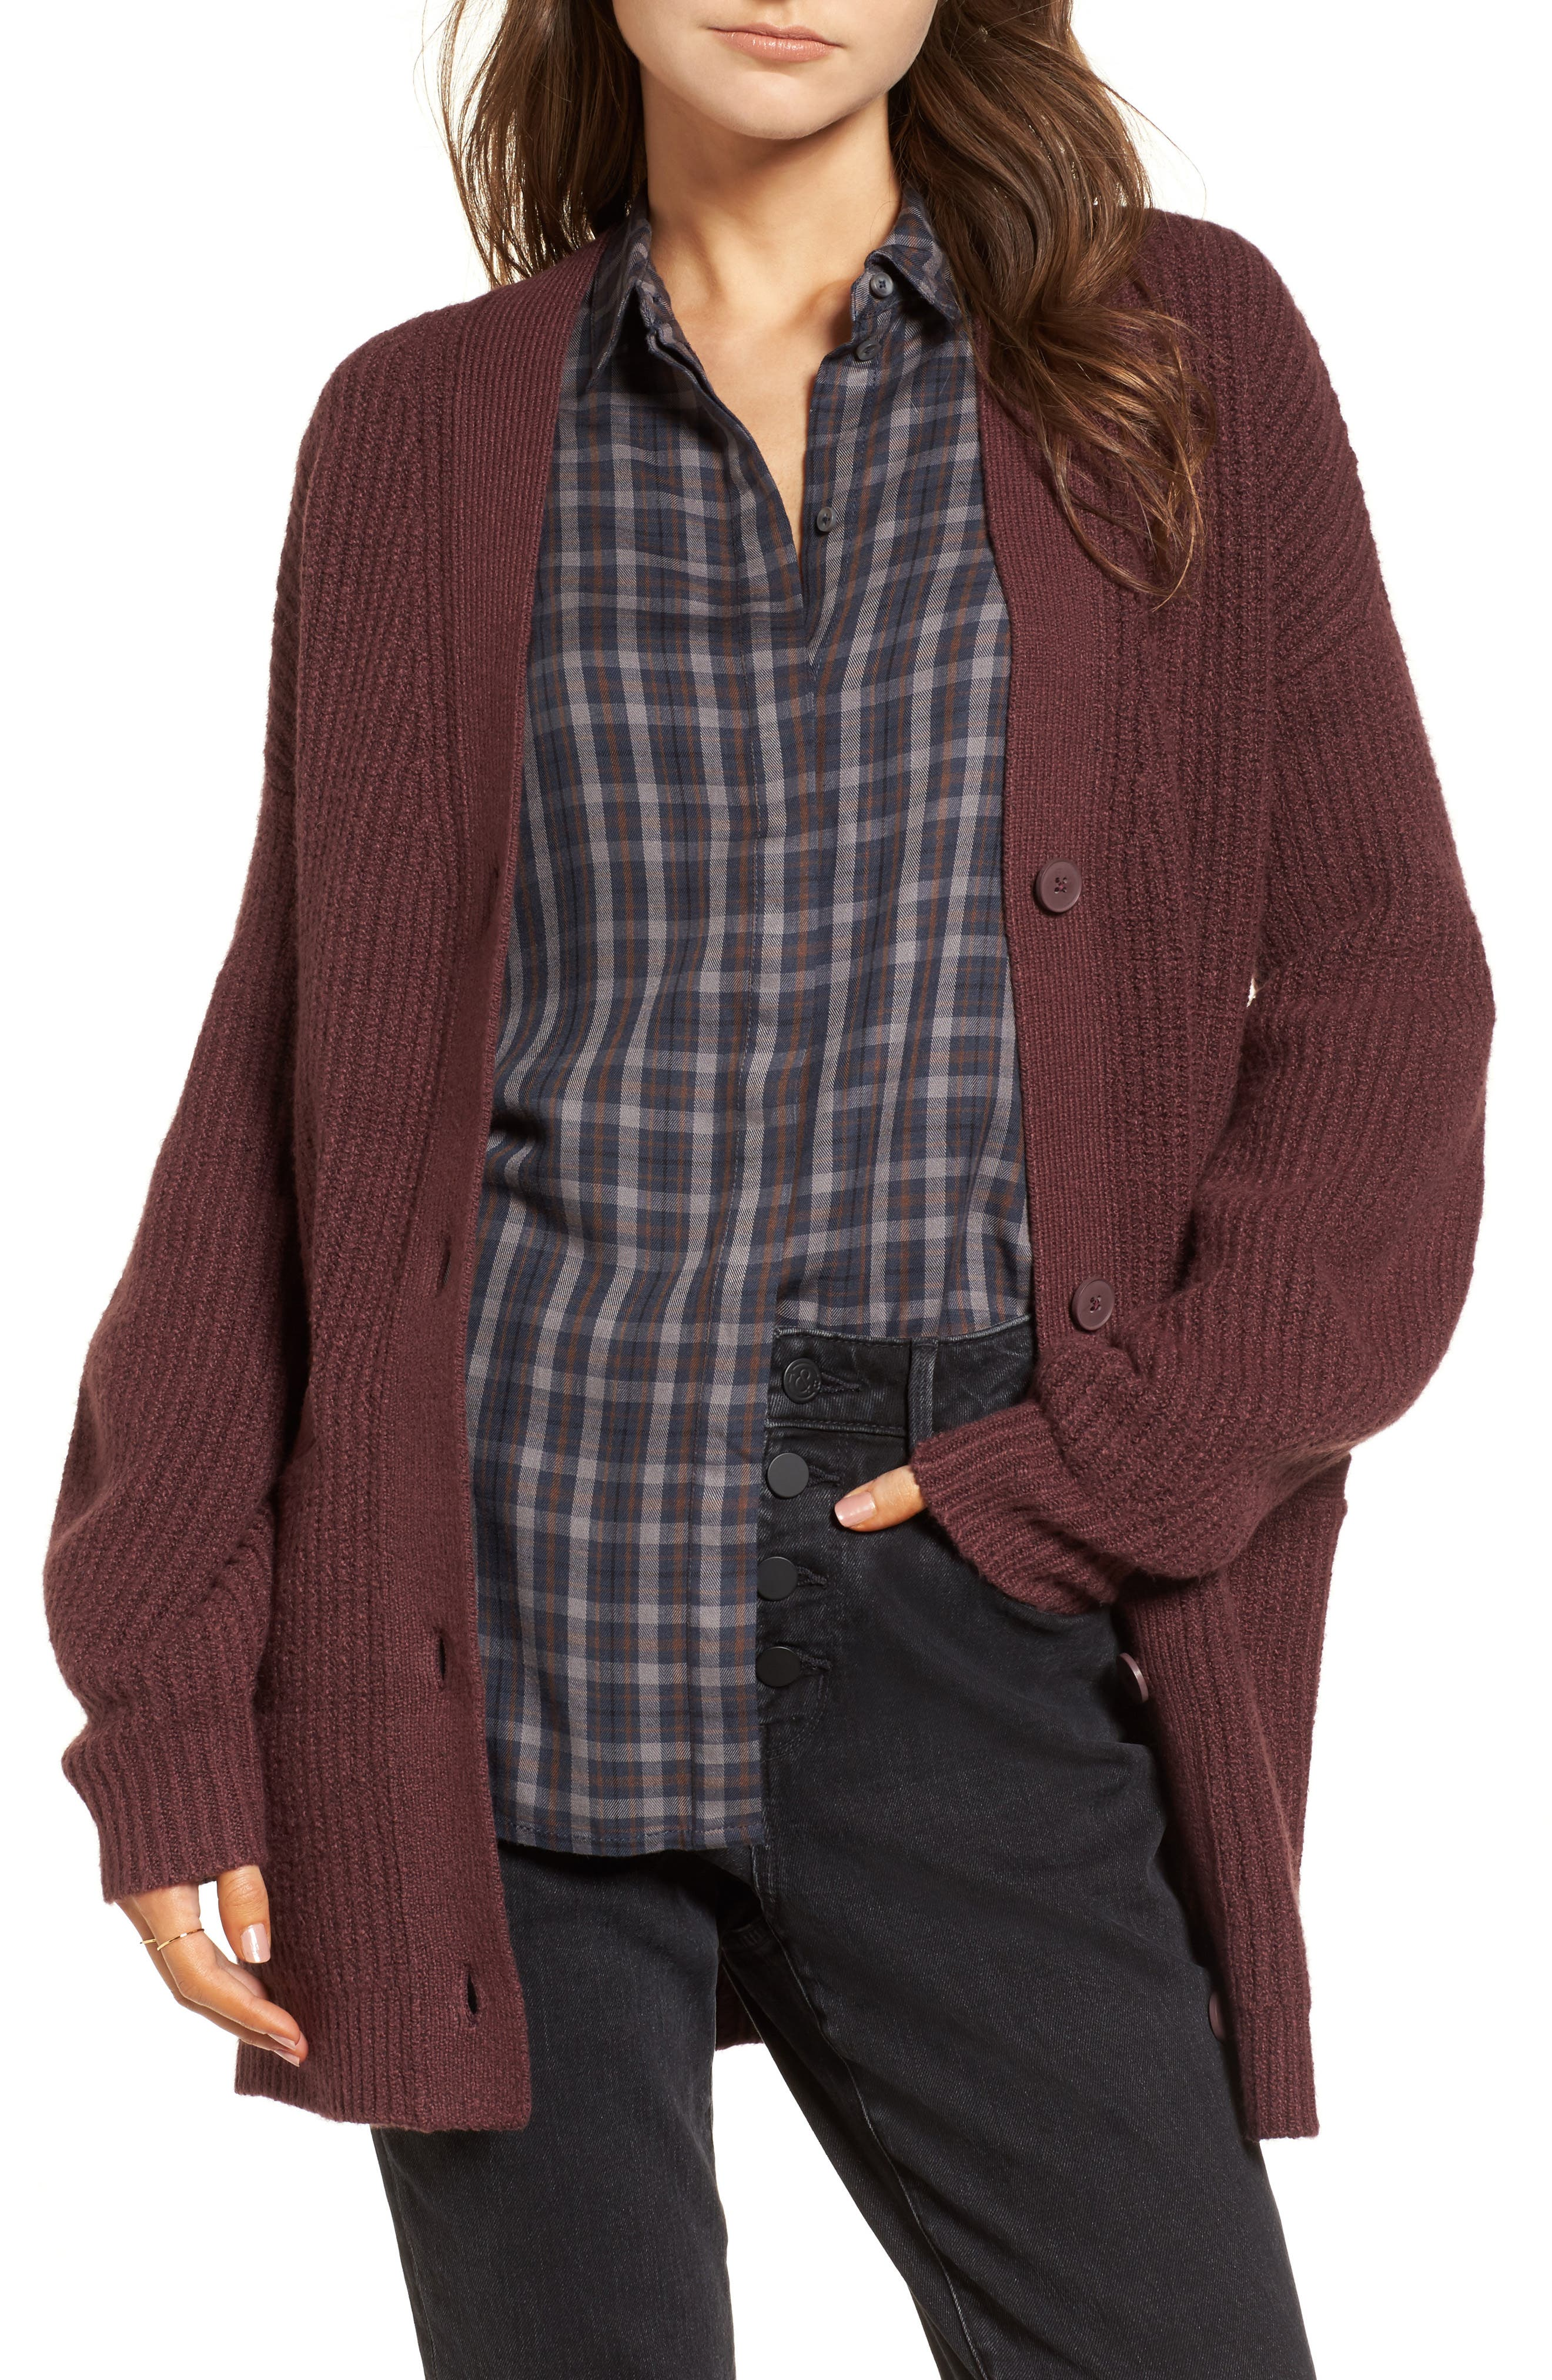 Ribbed Cardigan Sweater,                         Main,                         color, 930